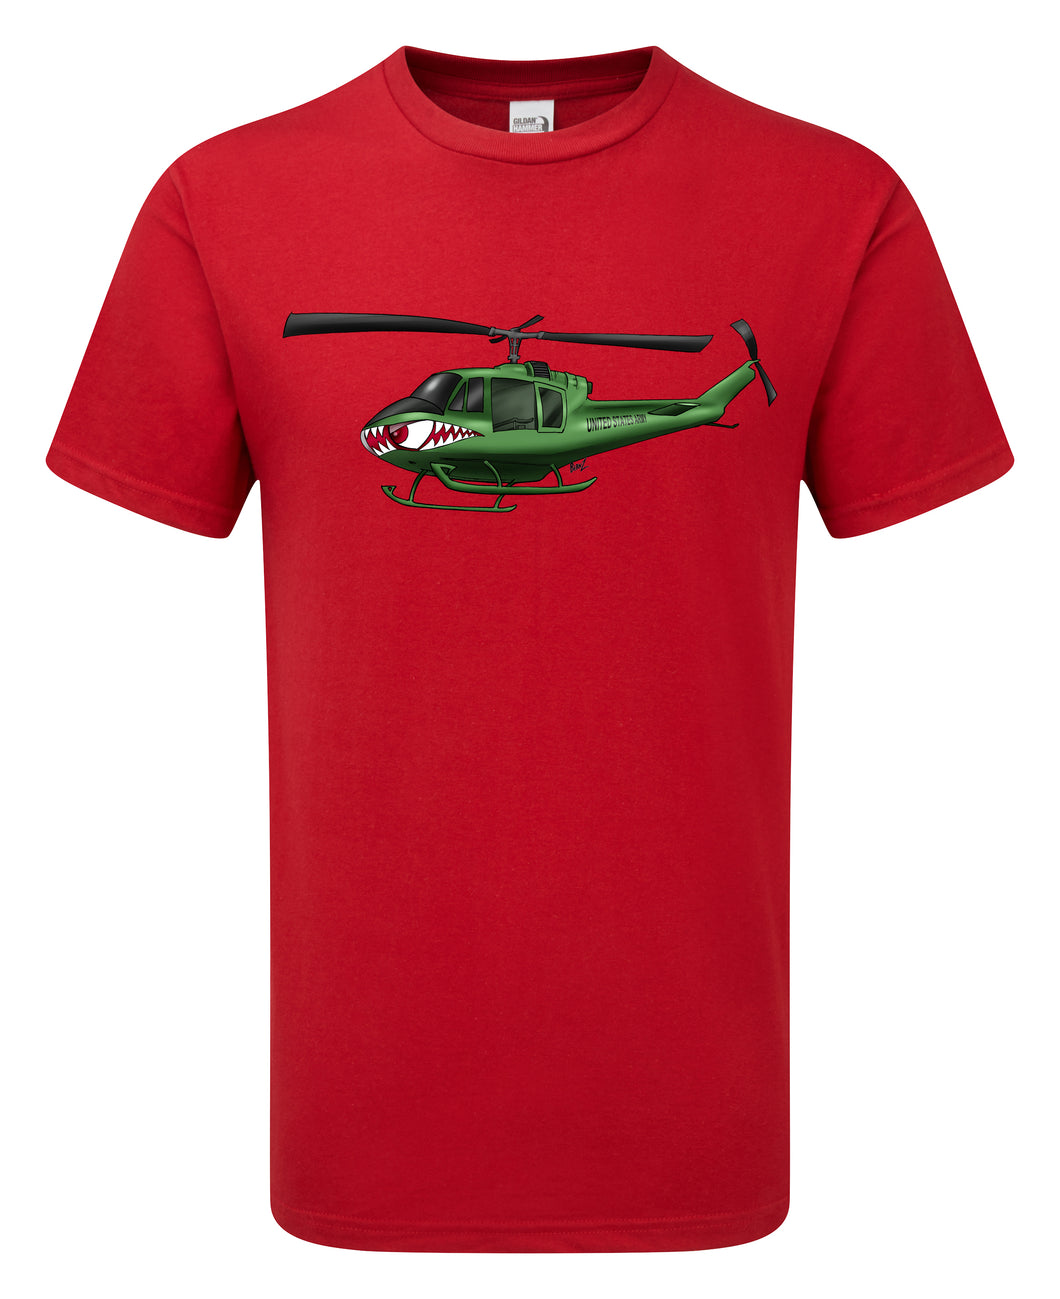 Huey Helicopter Cartoon T-Shirt - Scattee